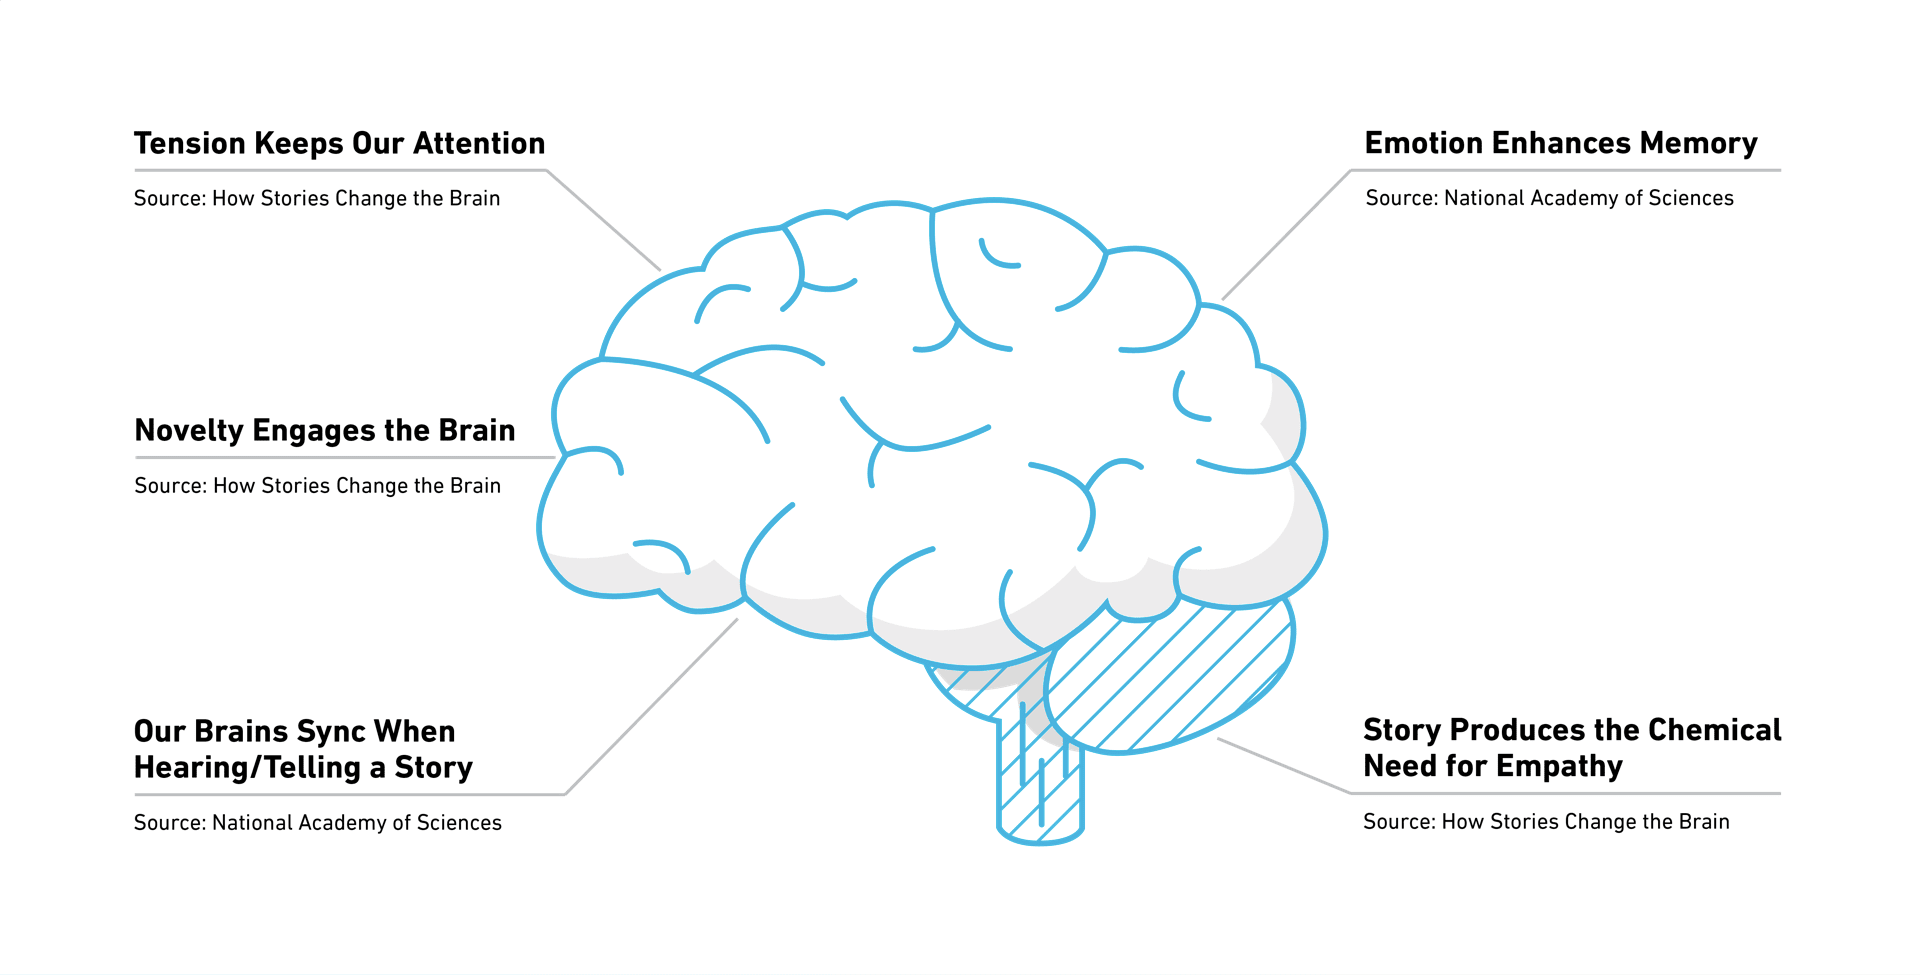 How Storytelling Impacts the Brain